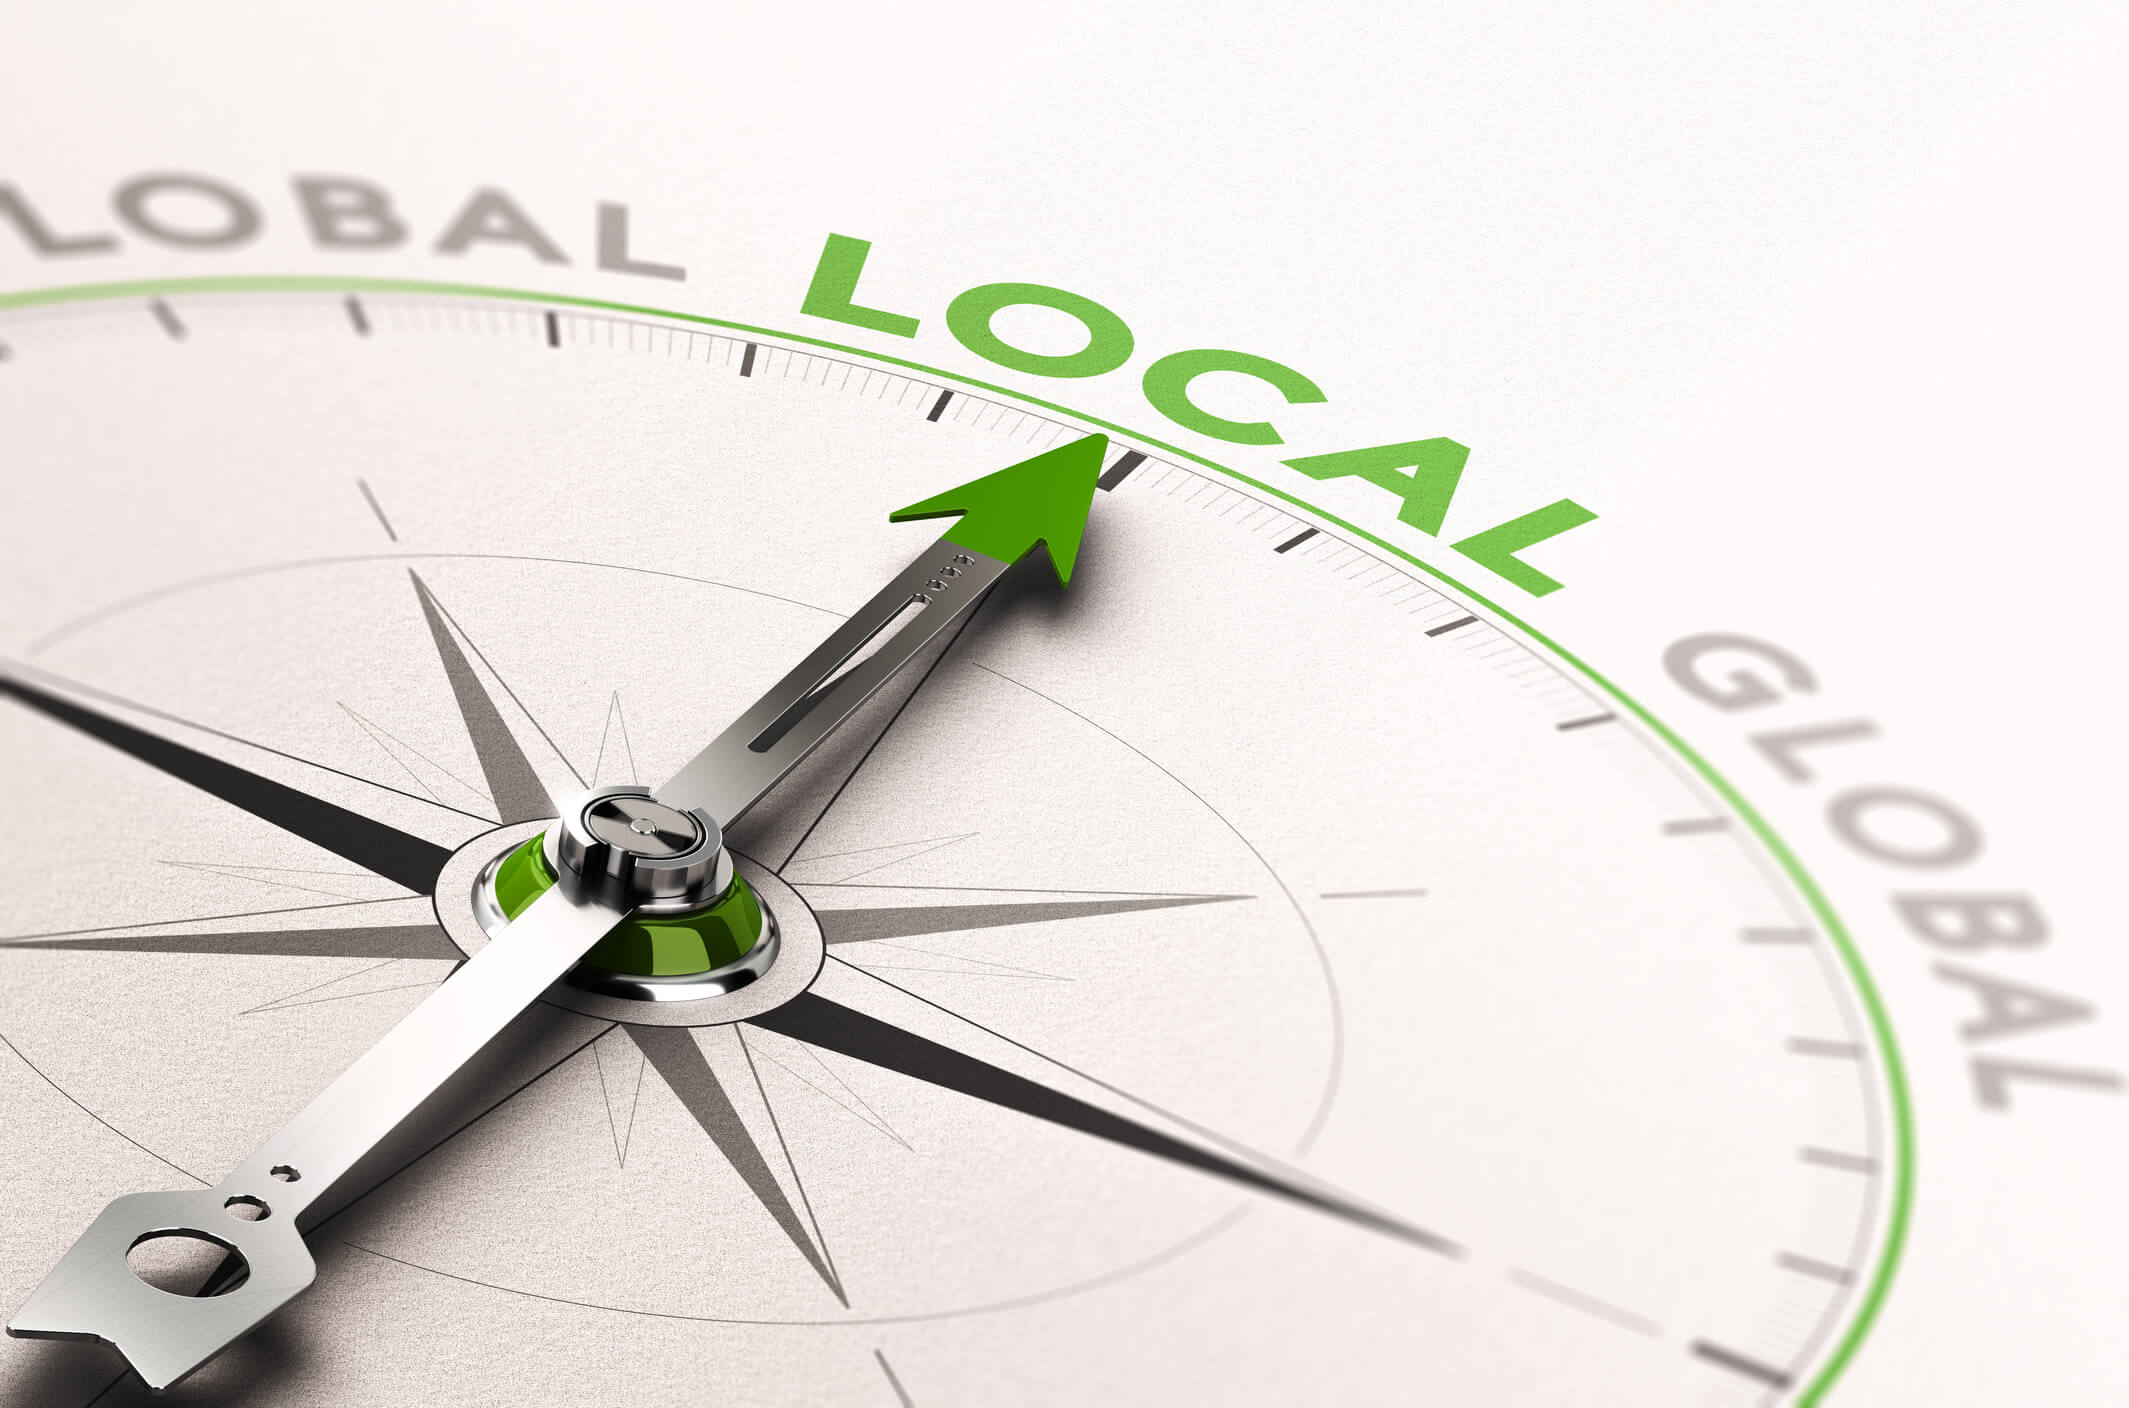 Lokales Marketing und Local SEO steigert die Regionale Bekanntheit